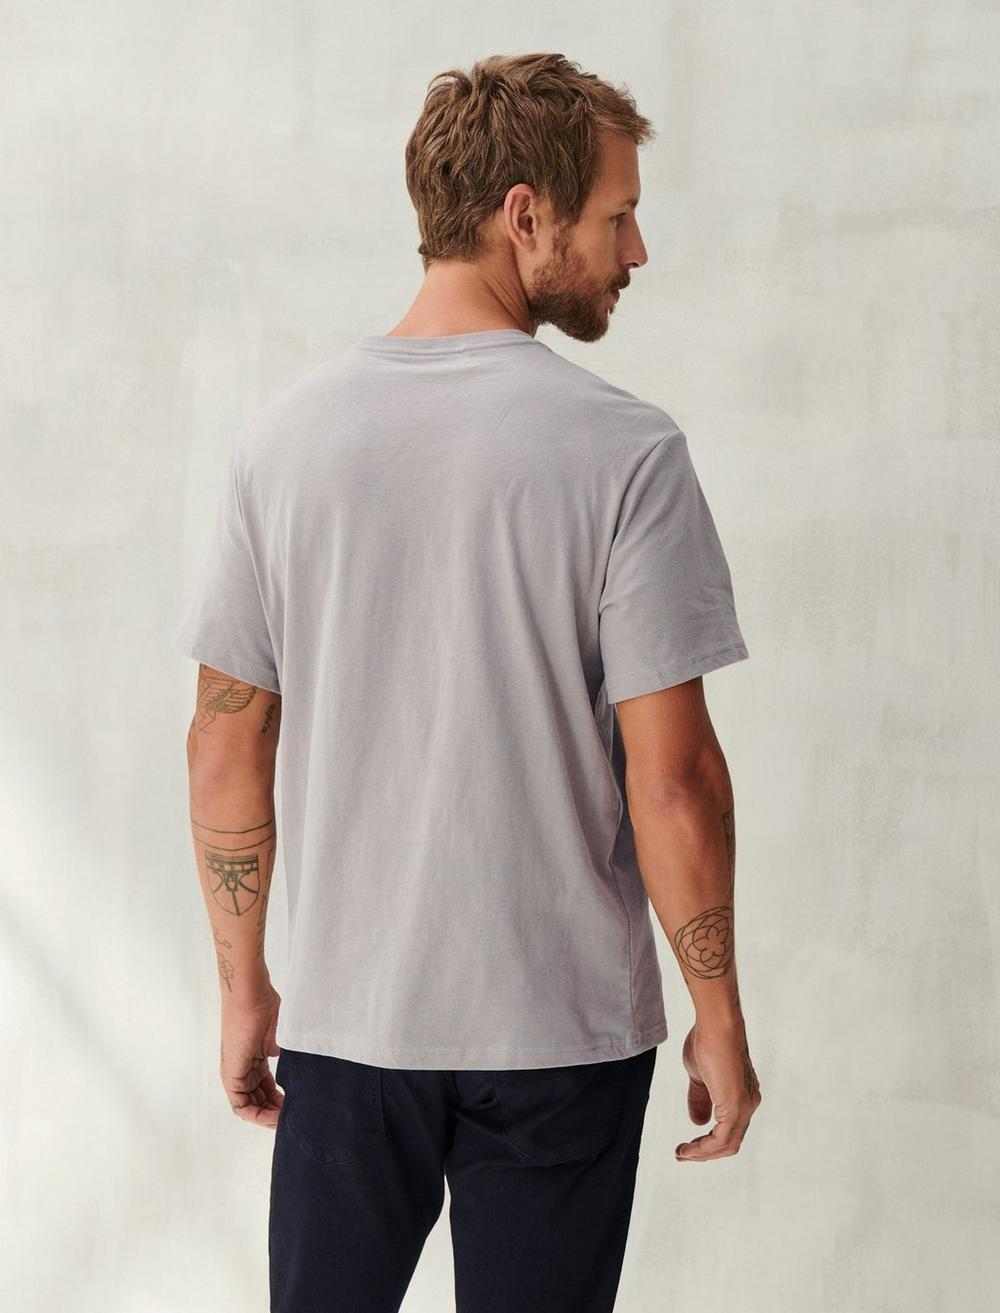 SUEDED JERSEY TEE, image 5